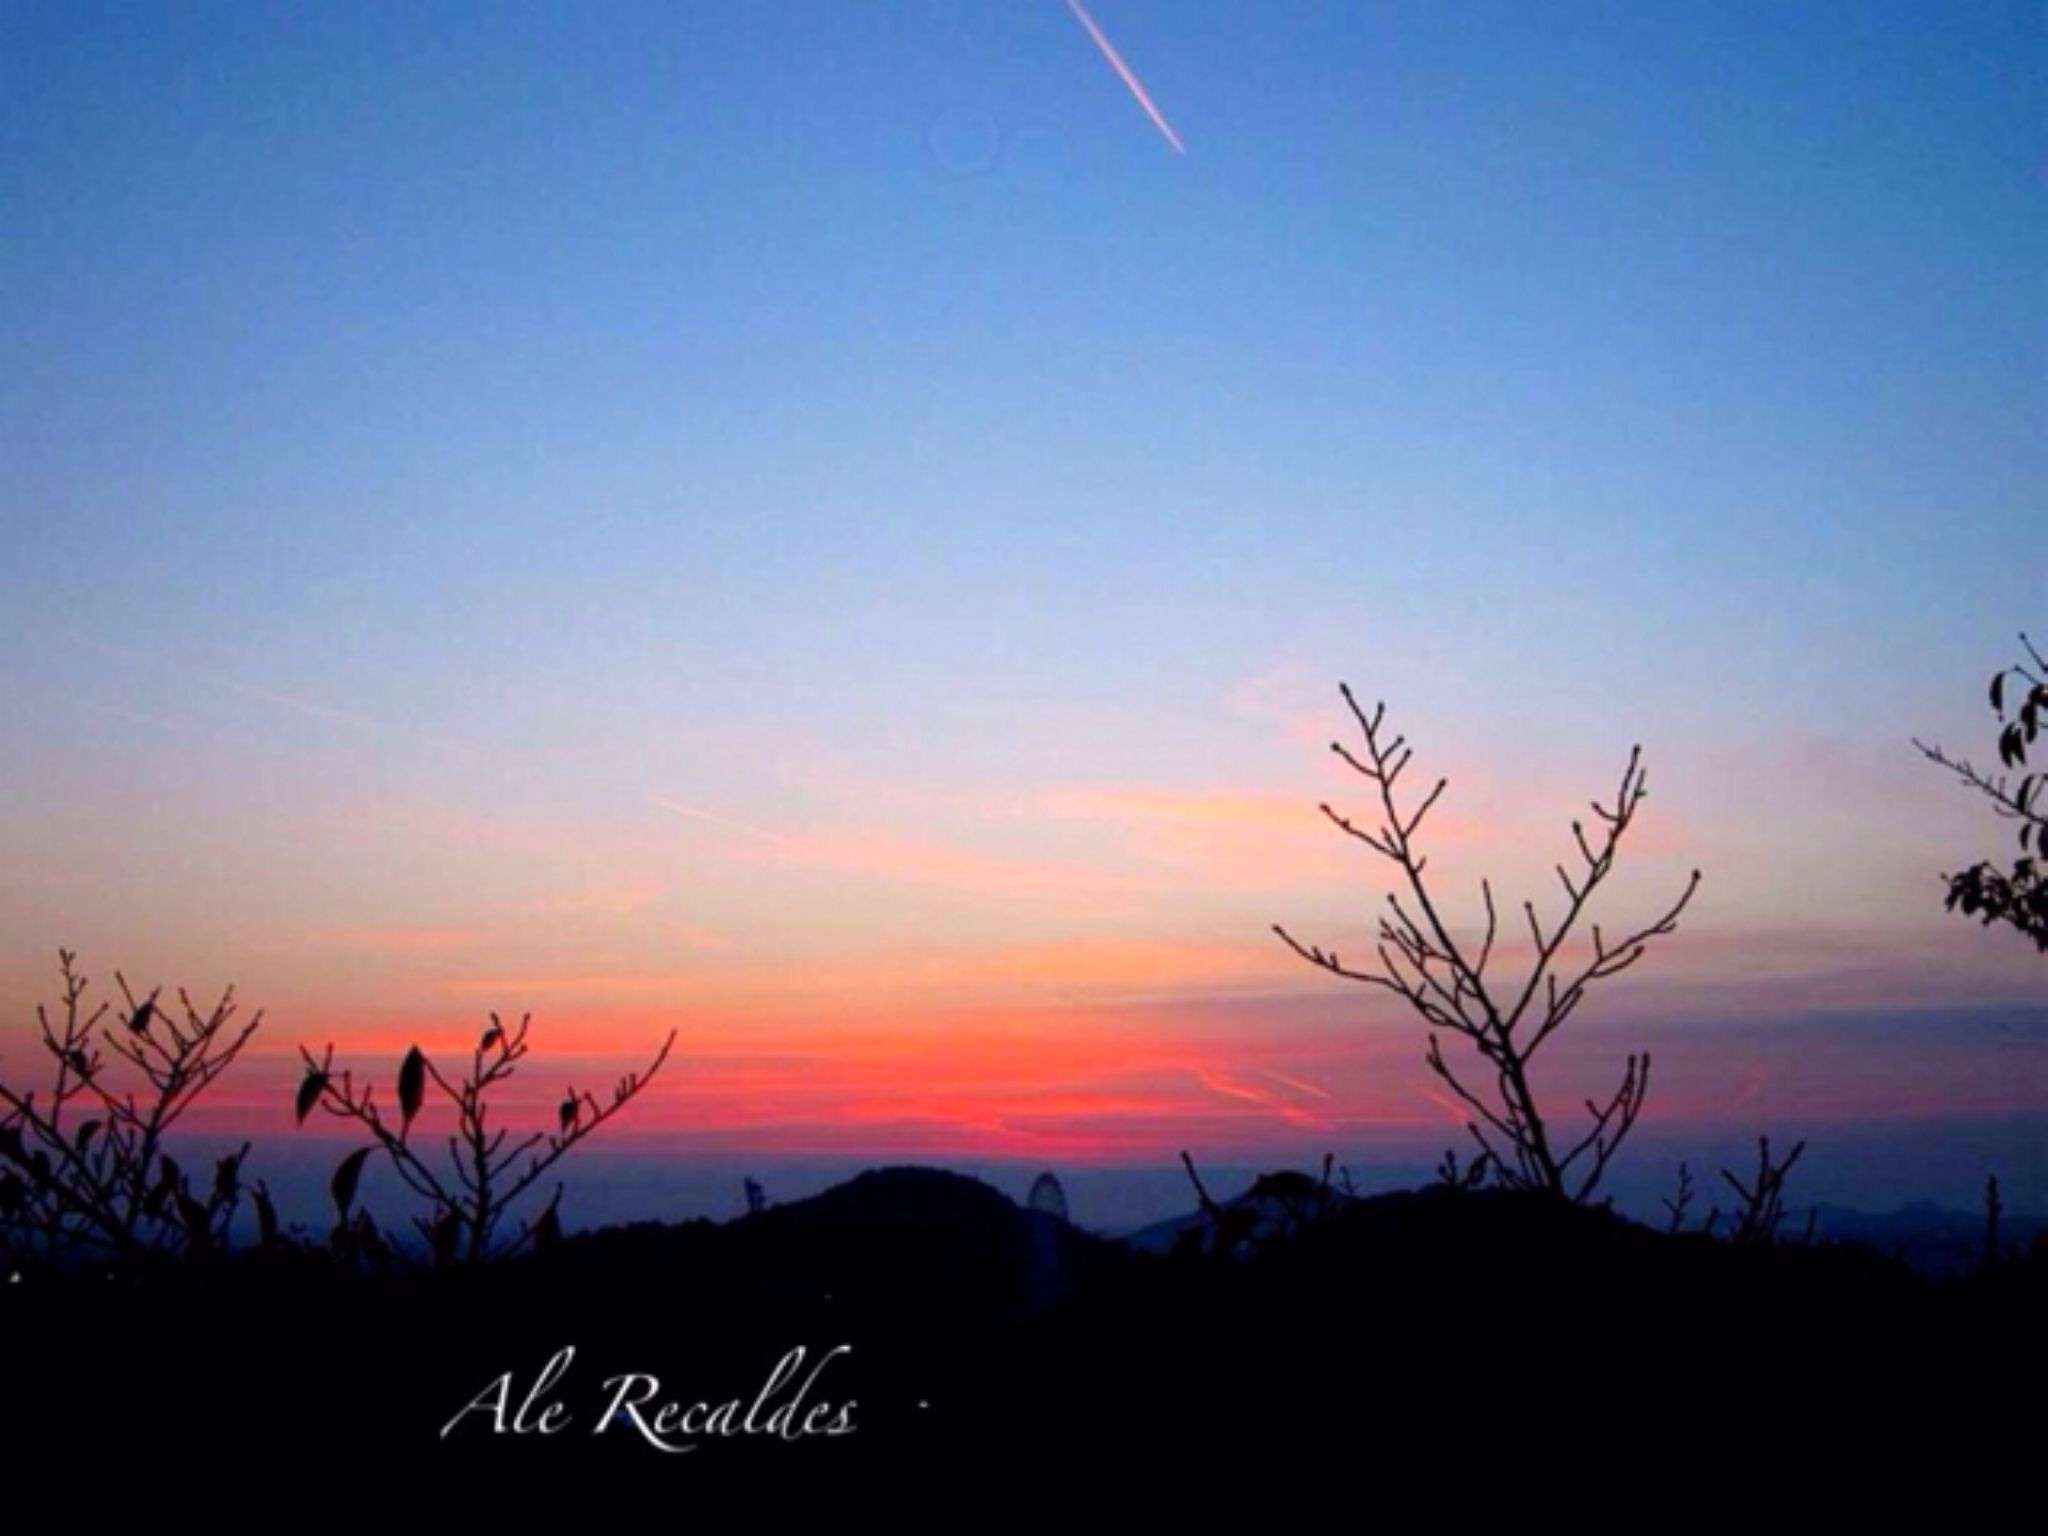 IMG_4957 by ale.recaldes